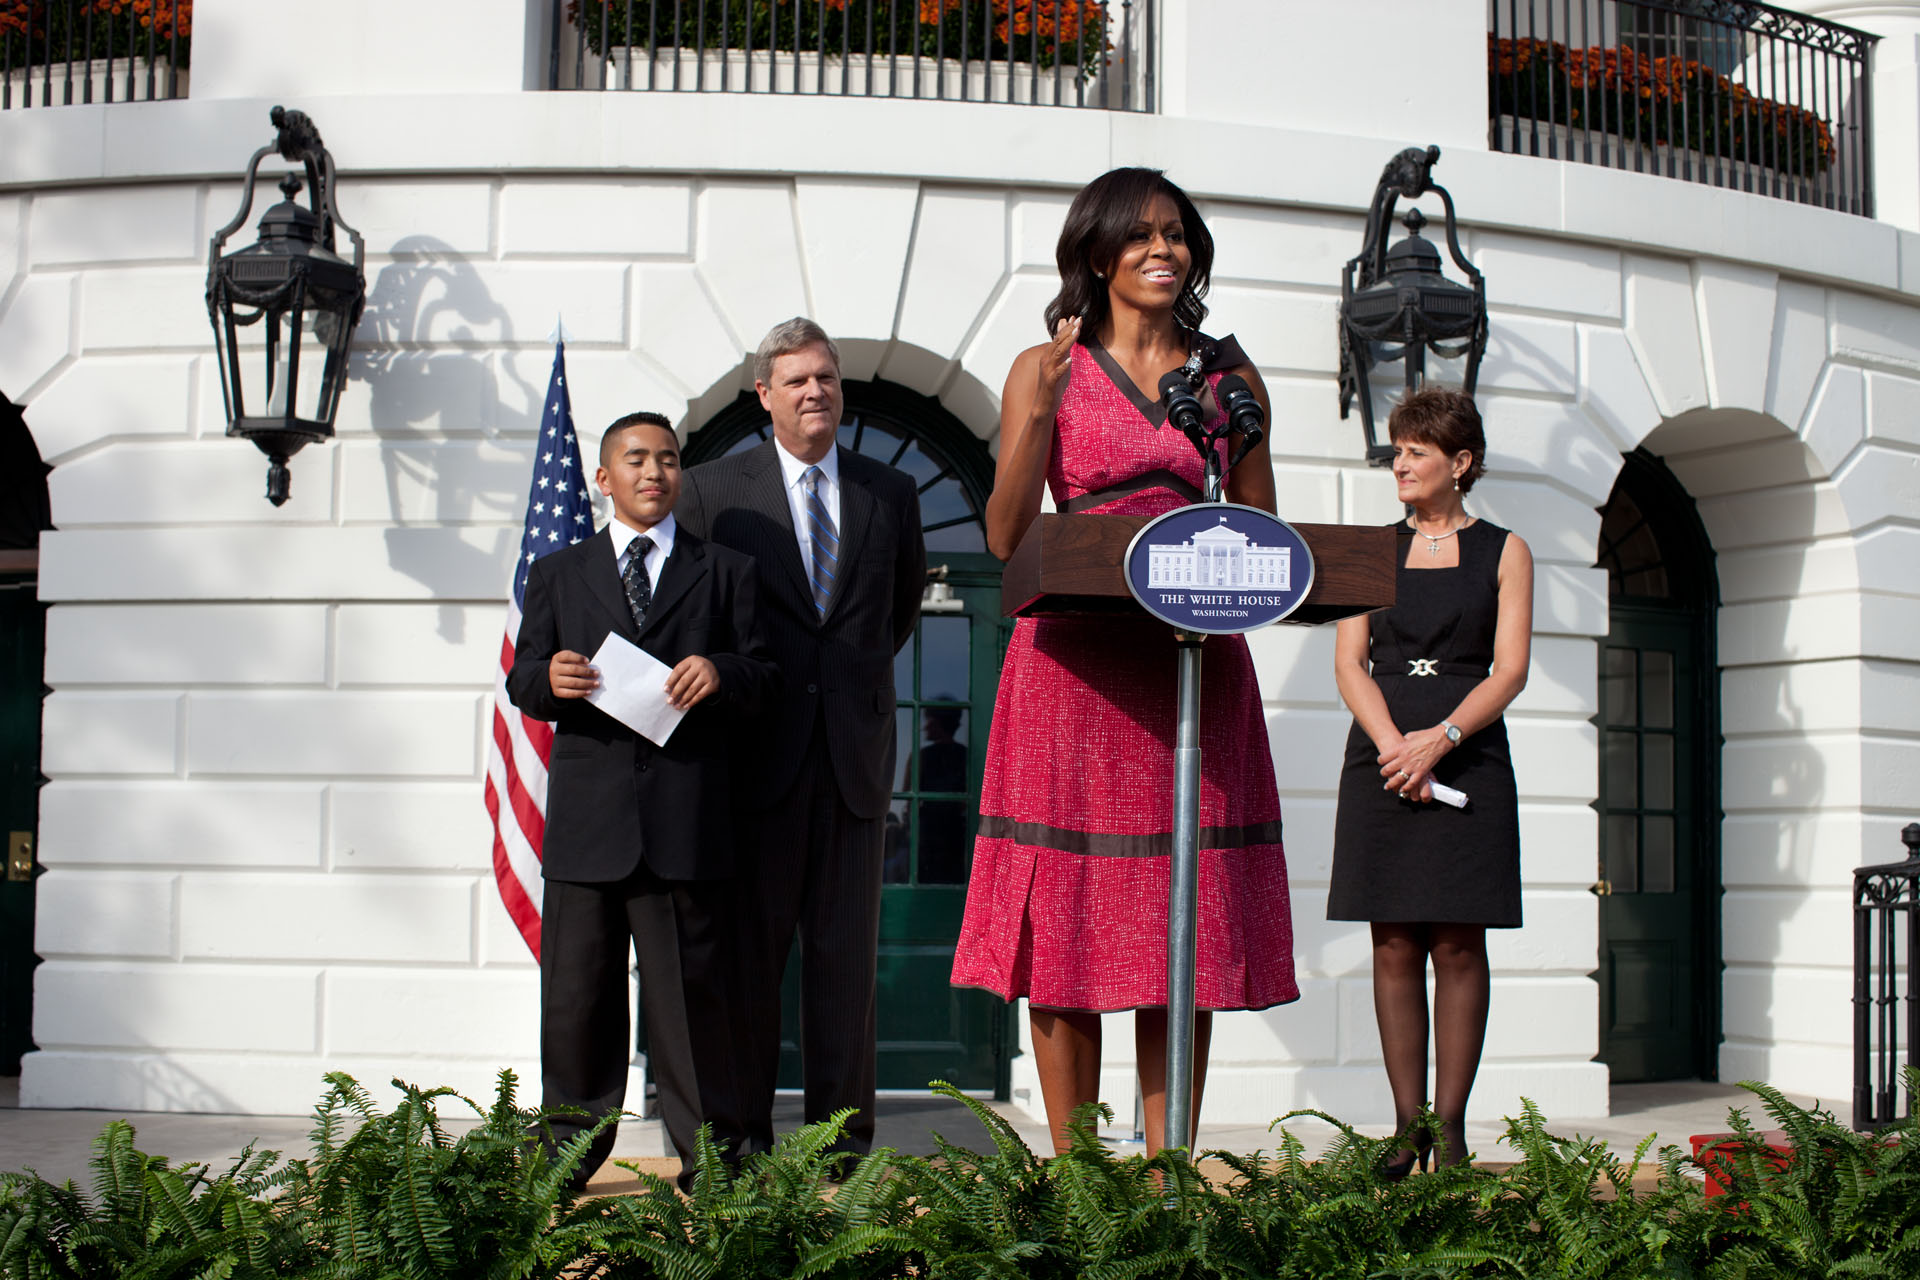 First Lady Michelle Obama delivers remarks on Healthier U.S. Schools Challenge